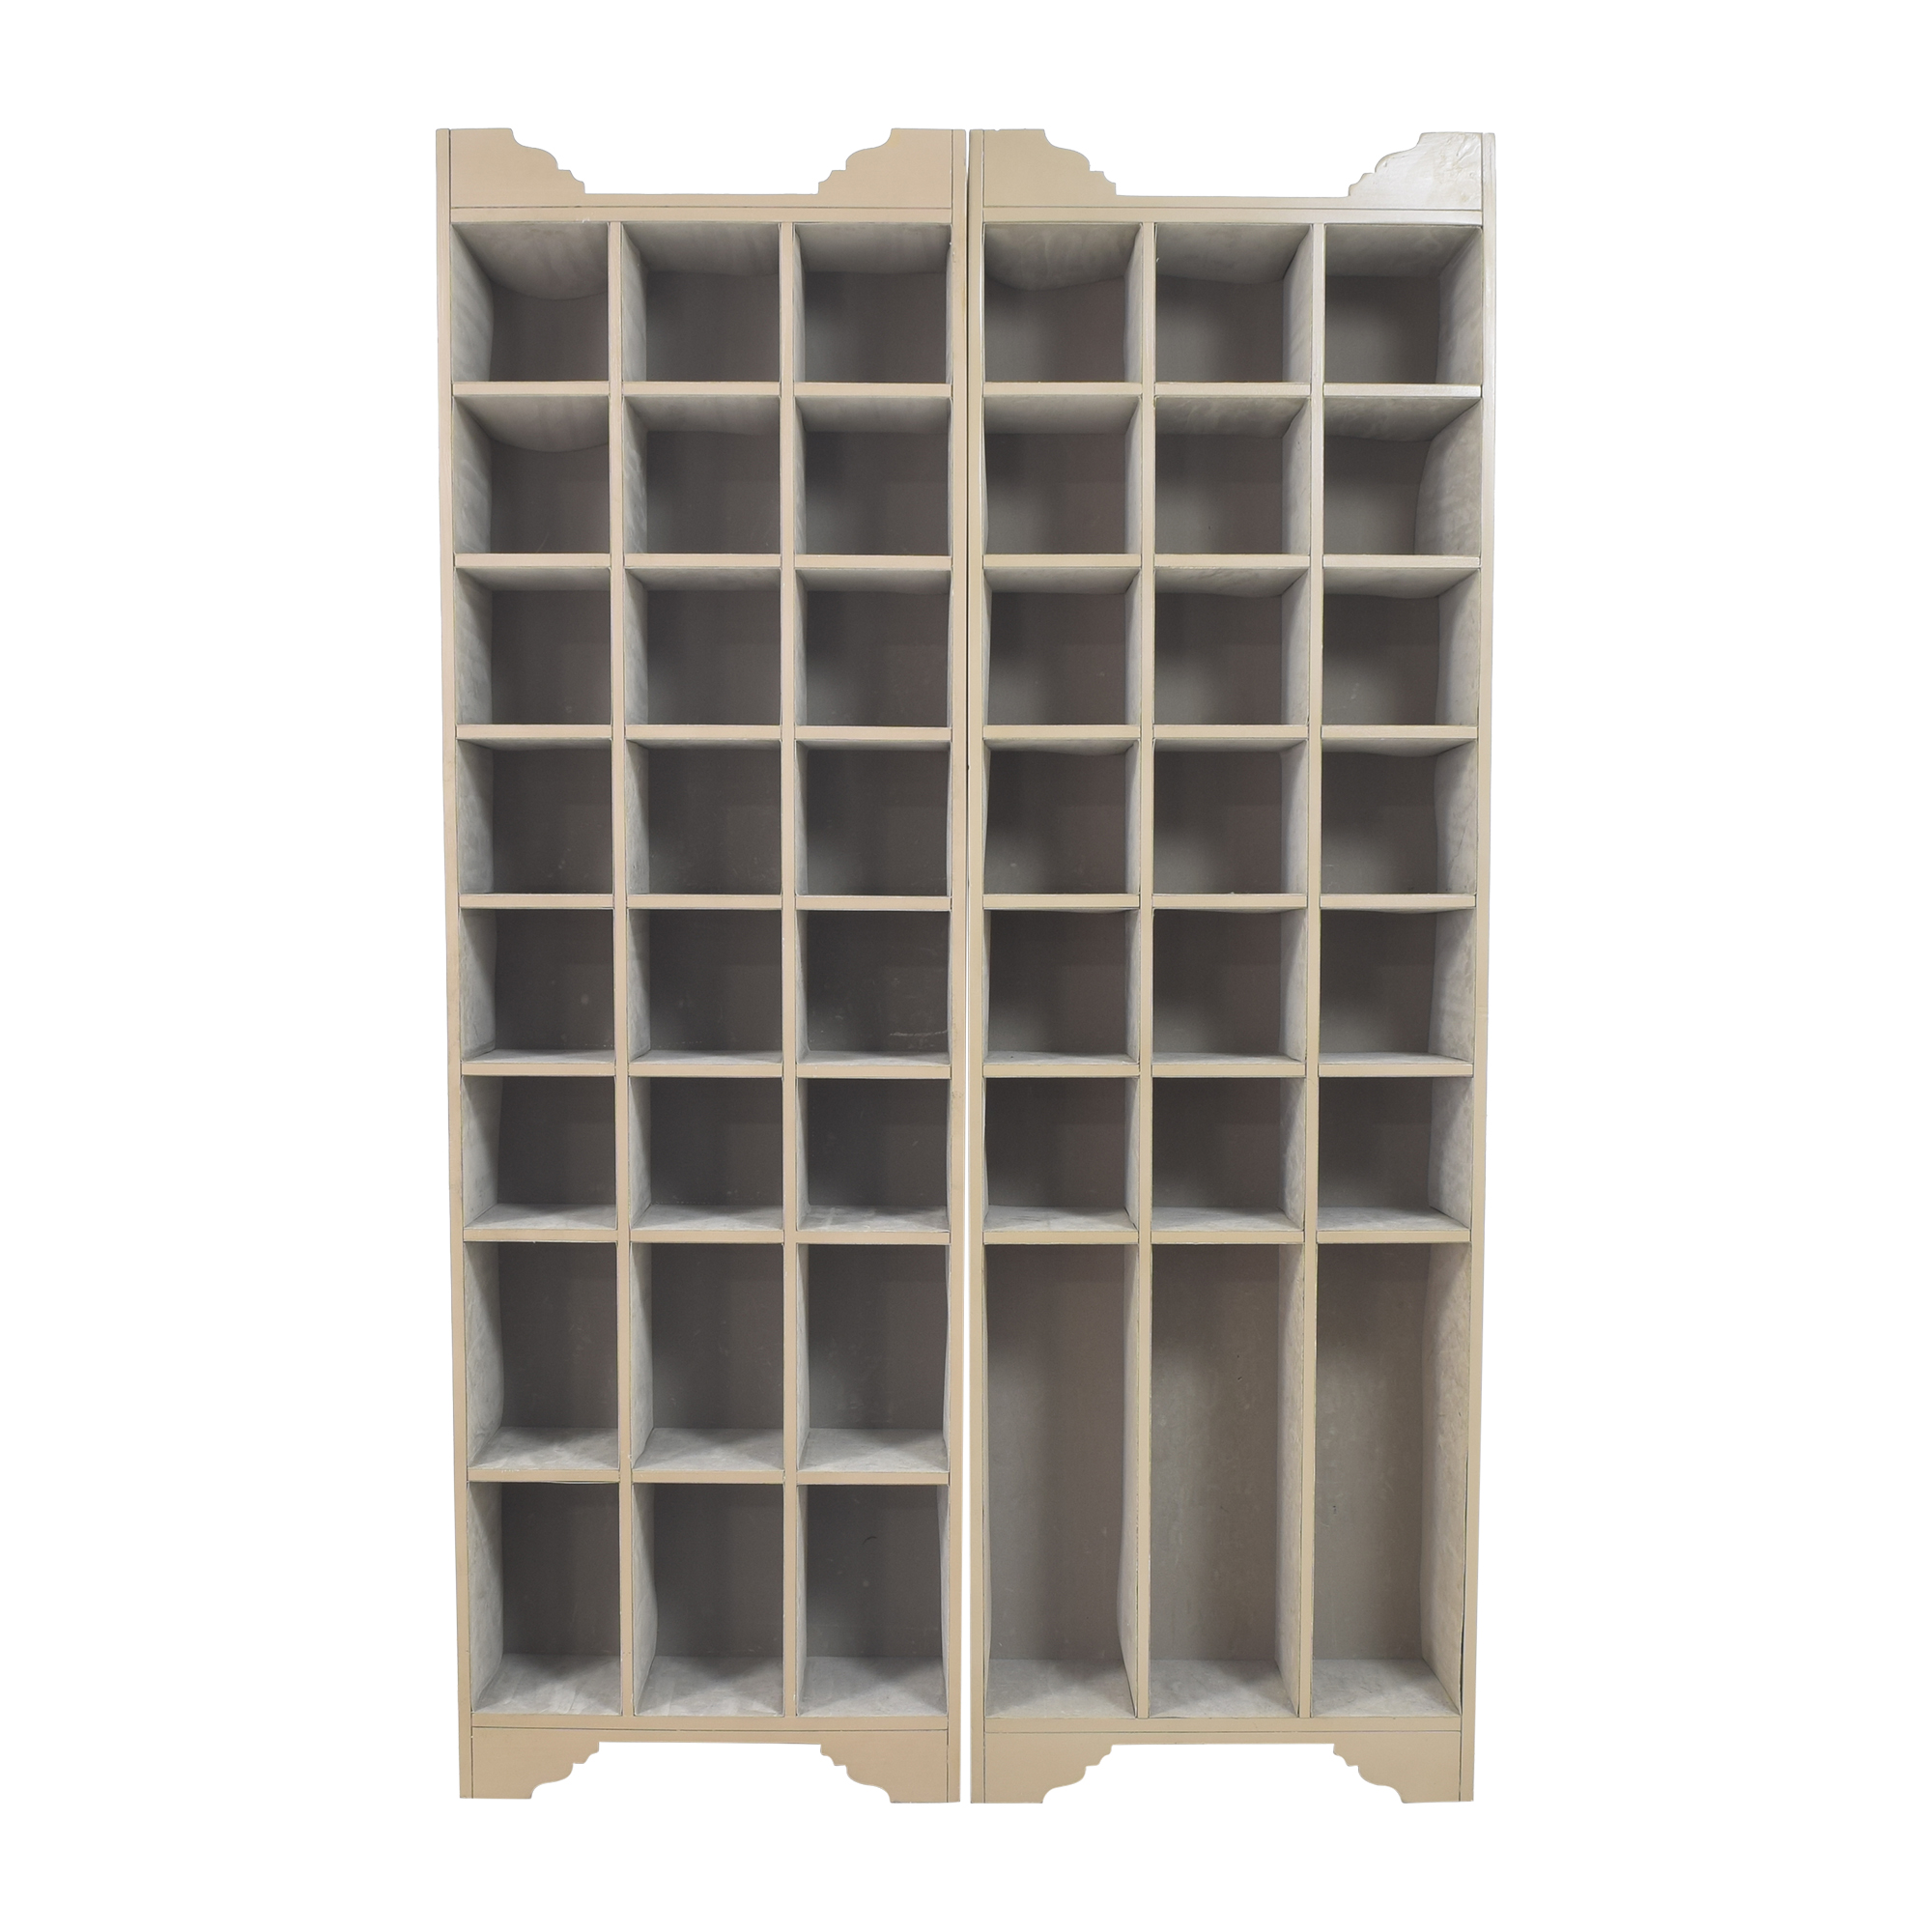 buy Ballard Designs Ballard Designs Sarah Storage Towers online